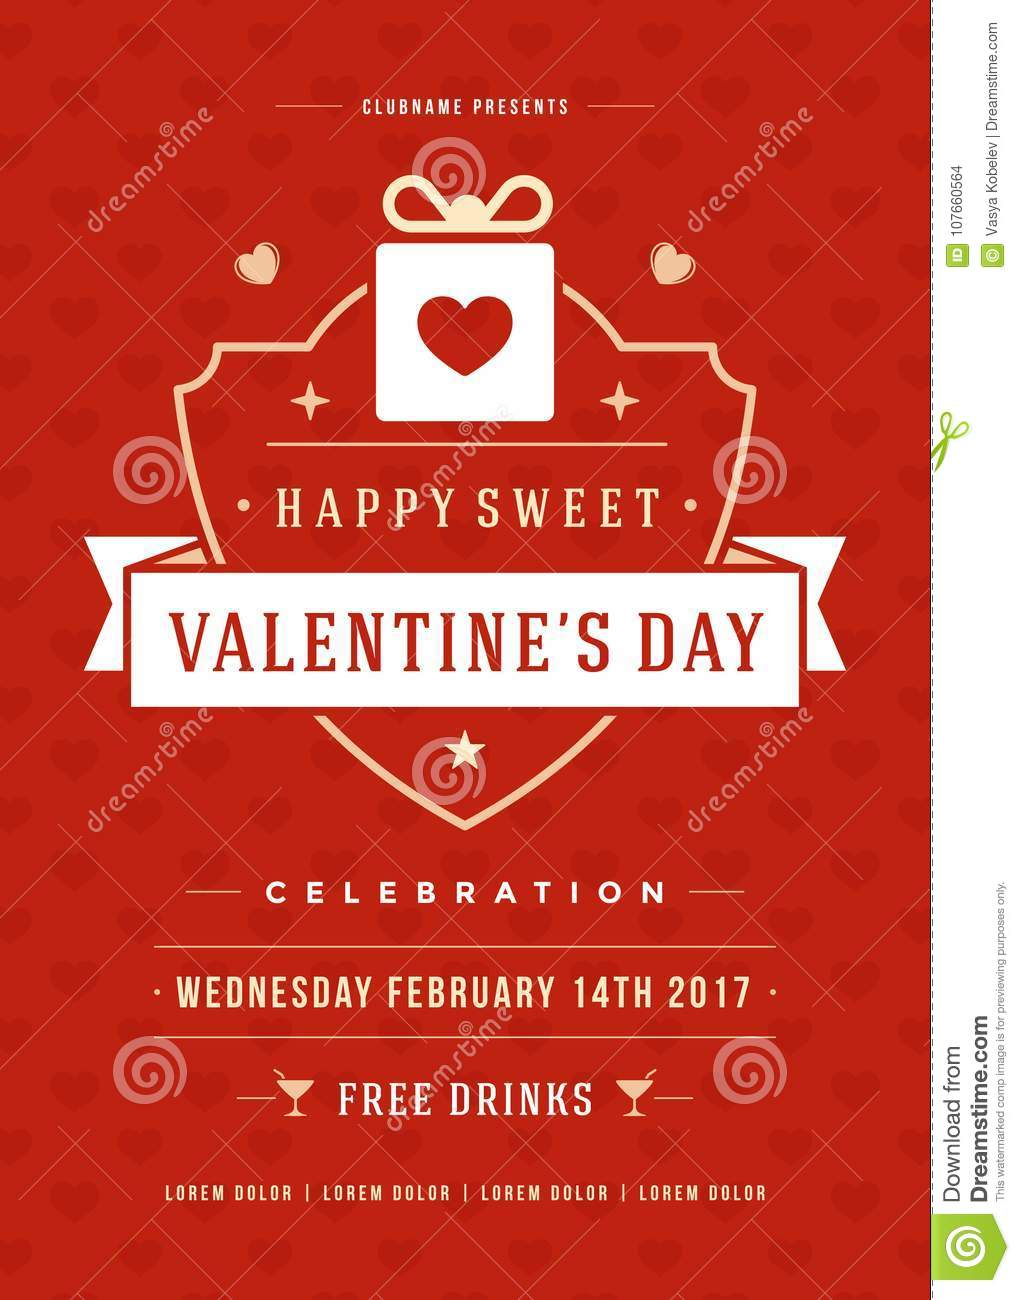 Happy Valentines Day Party Invitation Or Poster Vector Illustration